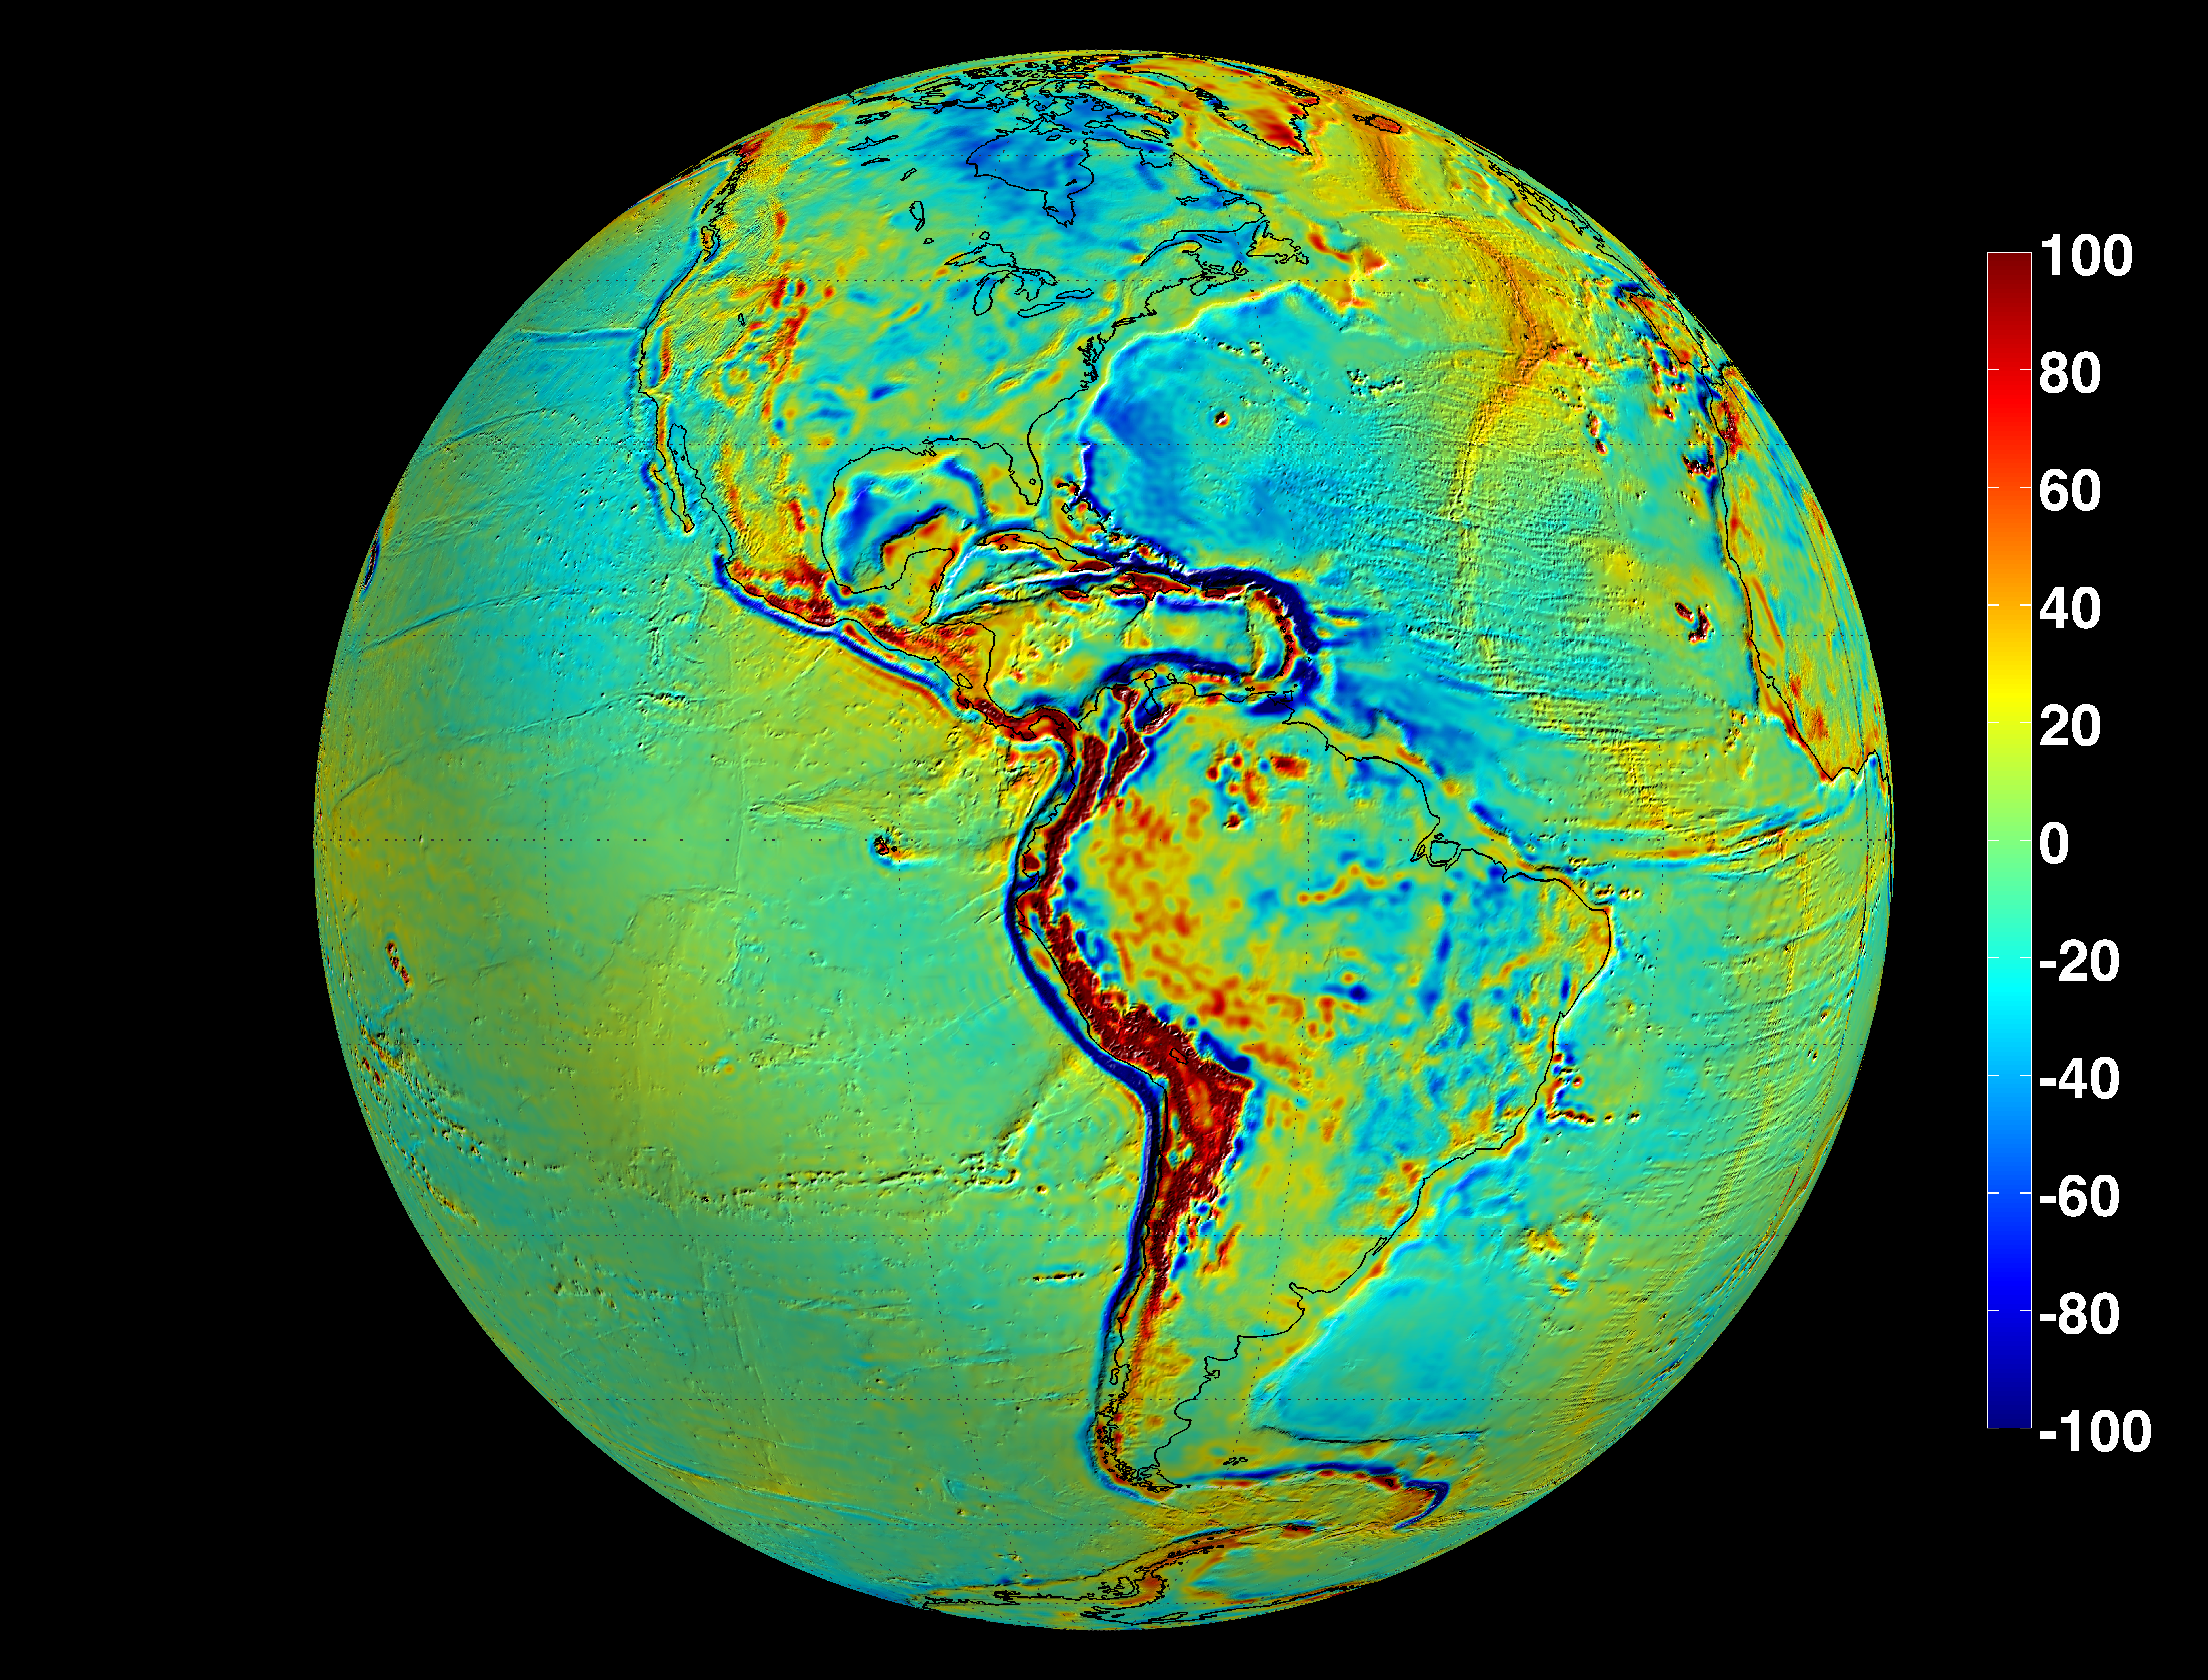 The GRACE Intermediate Field 48 (GIF48 from UT-CSR) field model is an improved mean gravity field that combines GRACE observations and terrestrial gravity information The terrestrial gravity information was taken from the DTU10 global gravity field.  Shown here are the so-called free air gravity deviations from an ideal ellipsoidal Earth model, in units of milli-gal. Areas colored yellow, orange, or red are areas where the actual gravity field is larger than the featureless-Earth model predicts, while the progressively darker shades of blue indicate places where the gravity field is less.